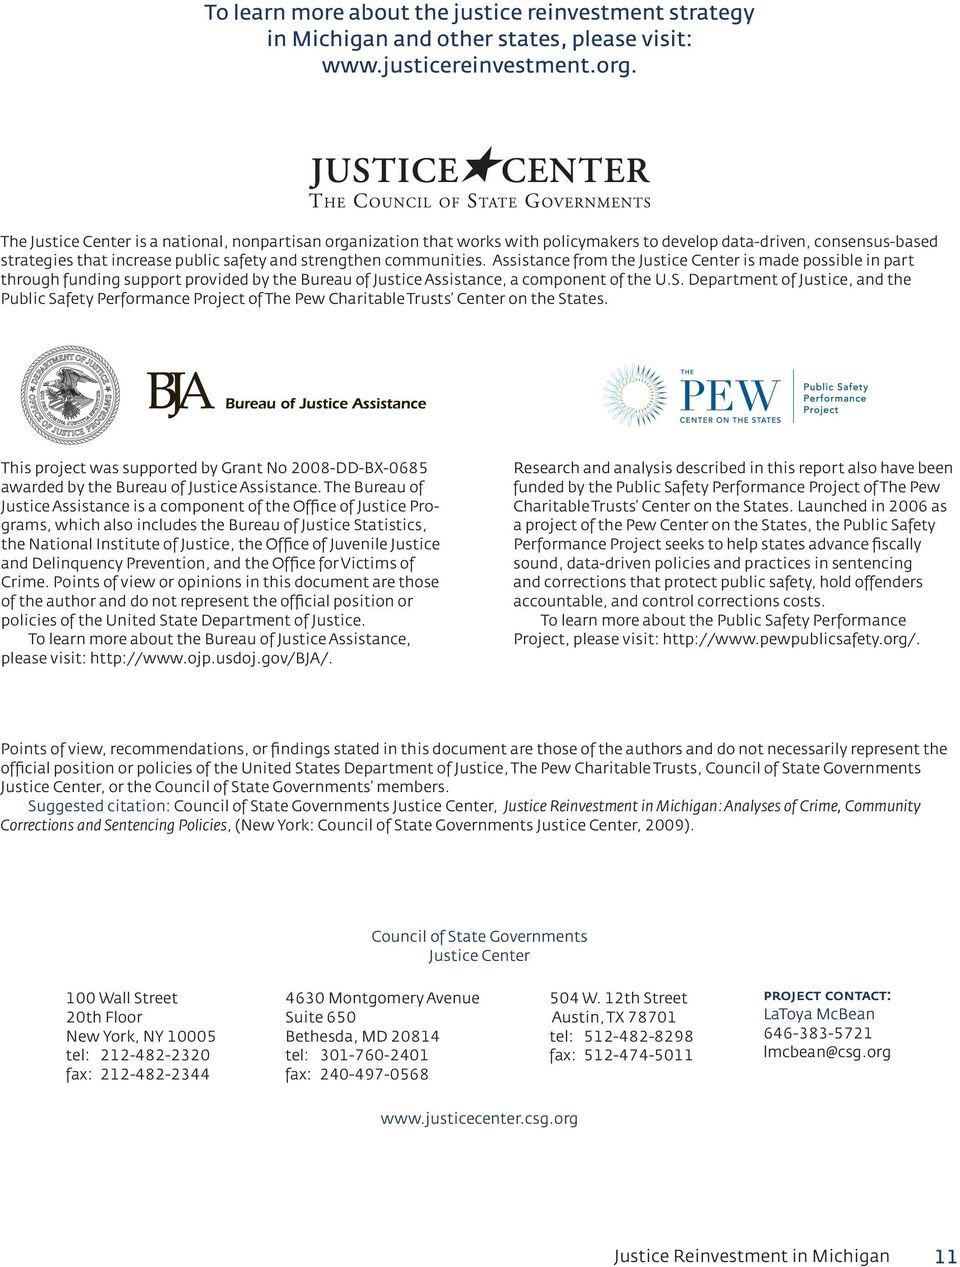 Assistance from the Justice Center is made possible in part through funding support provided by the Bureau of Justice Assistance, a component of the U.S.